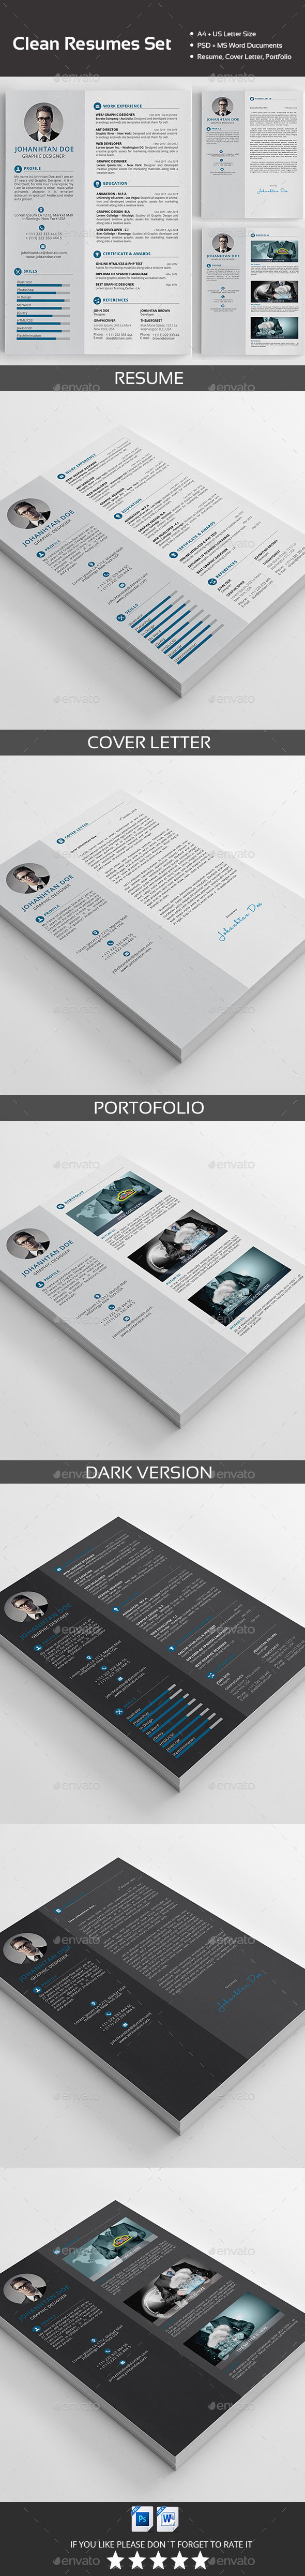 GraphicRiver Resume 11891467